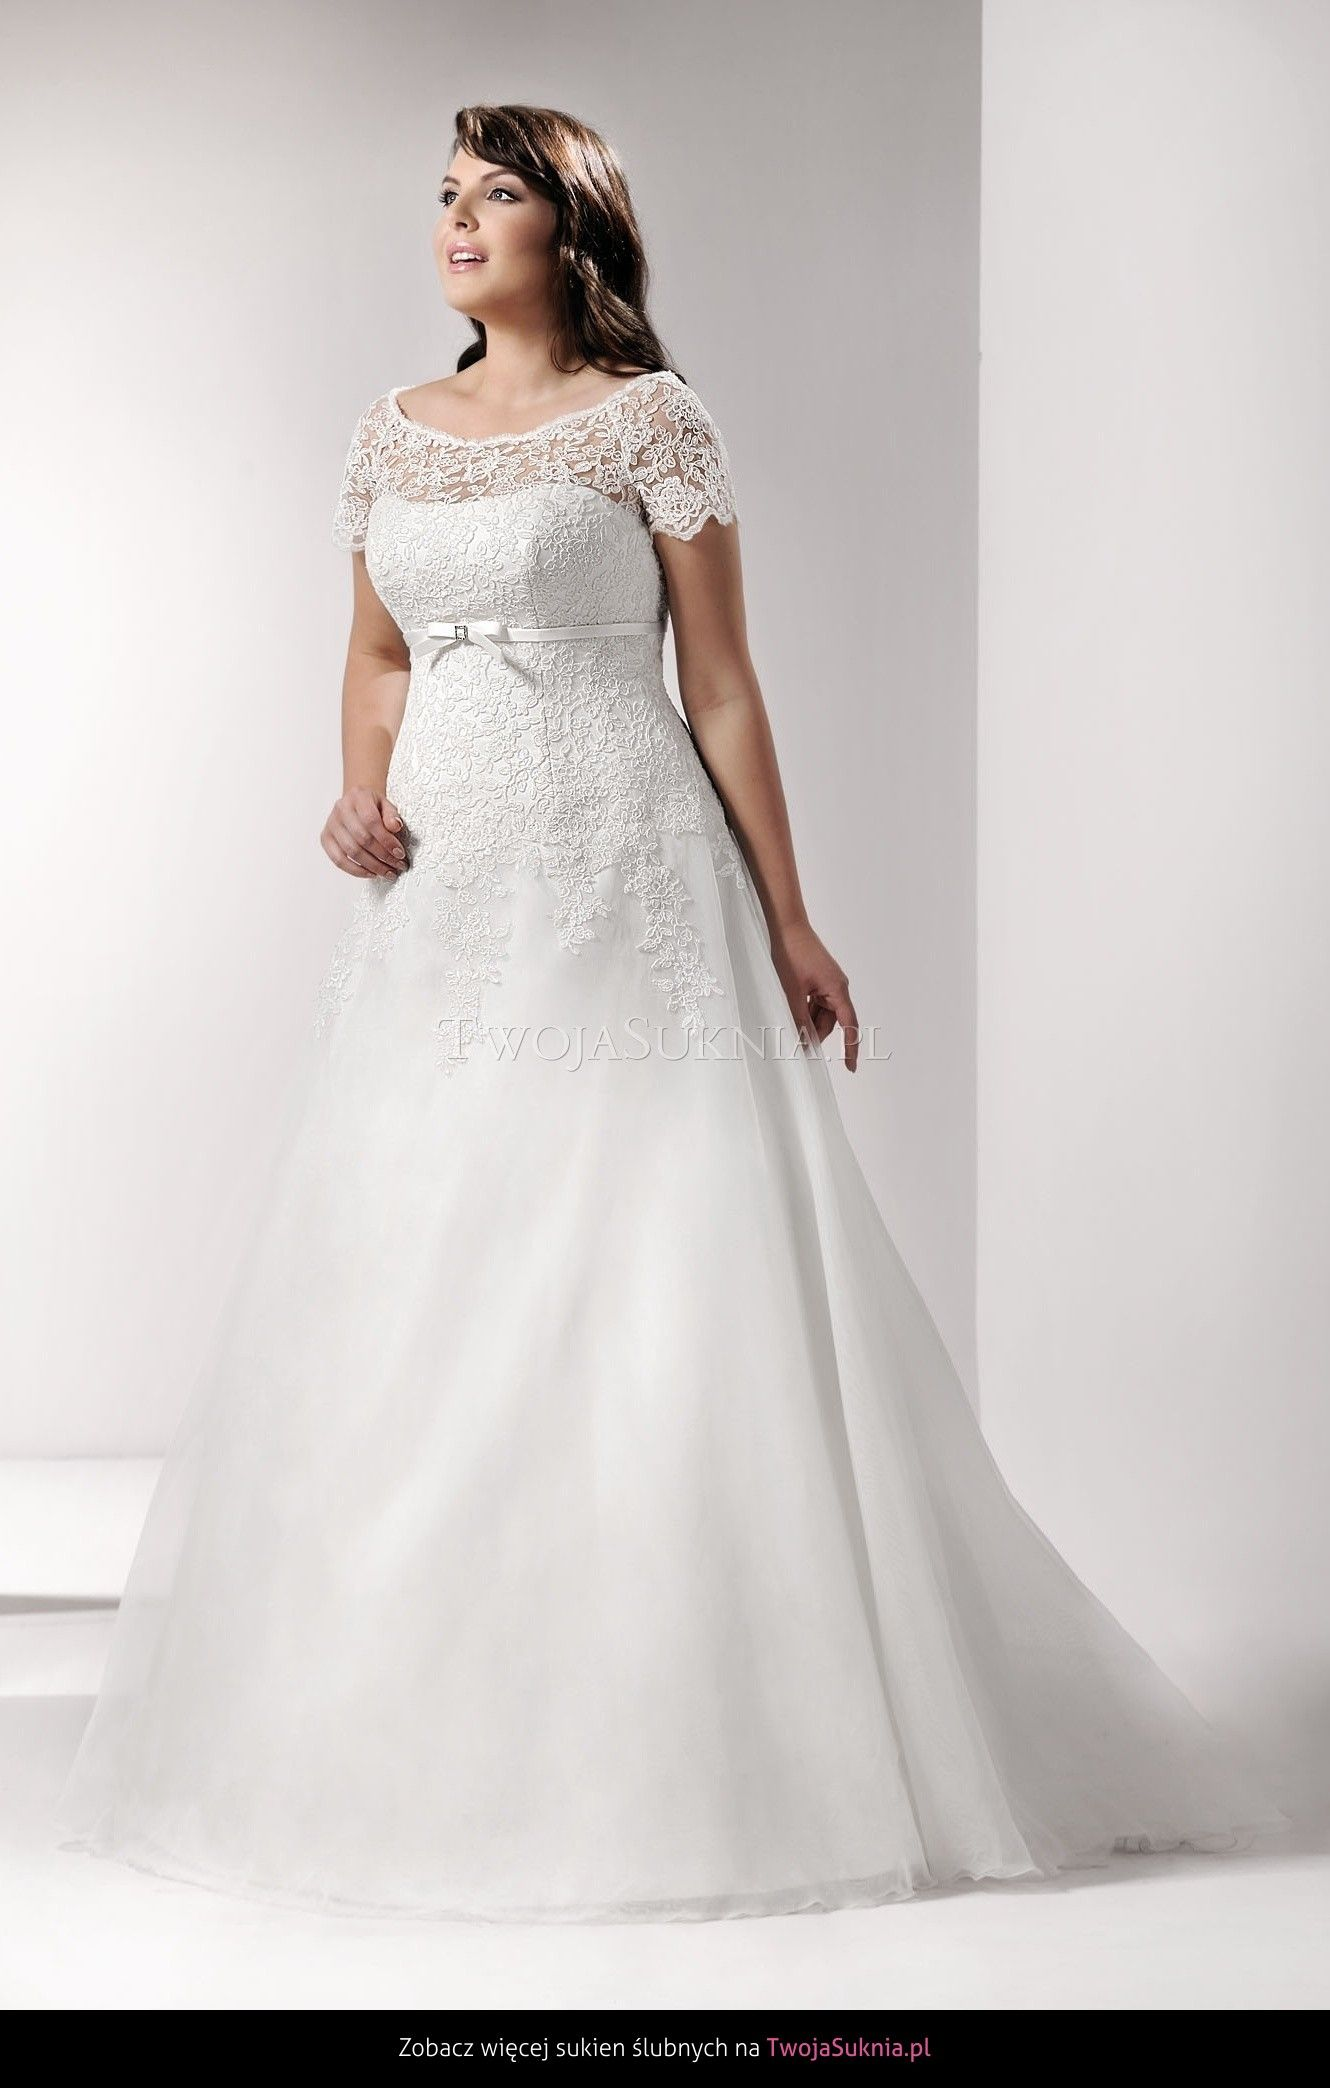 Size 32 wedding dress  Agnes Fashion Group    Love Collection  ślub  Pinterest